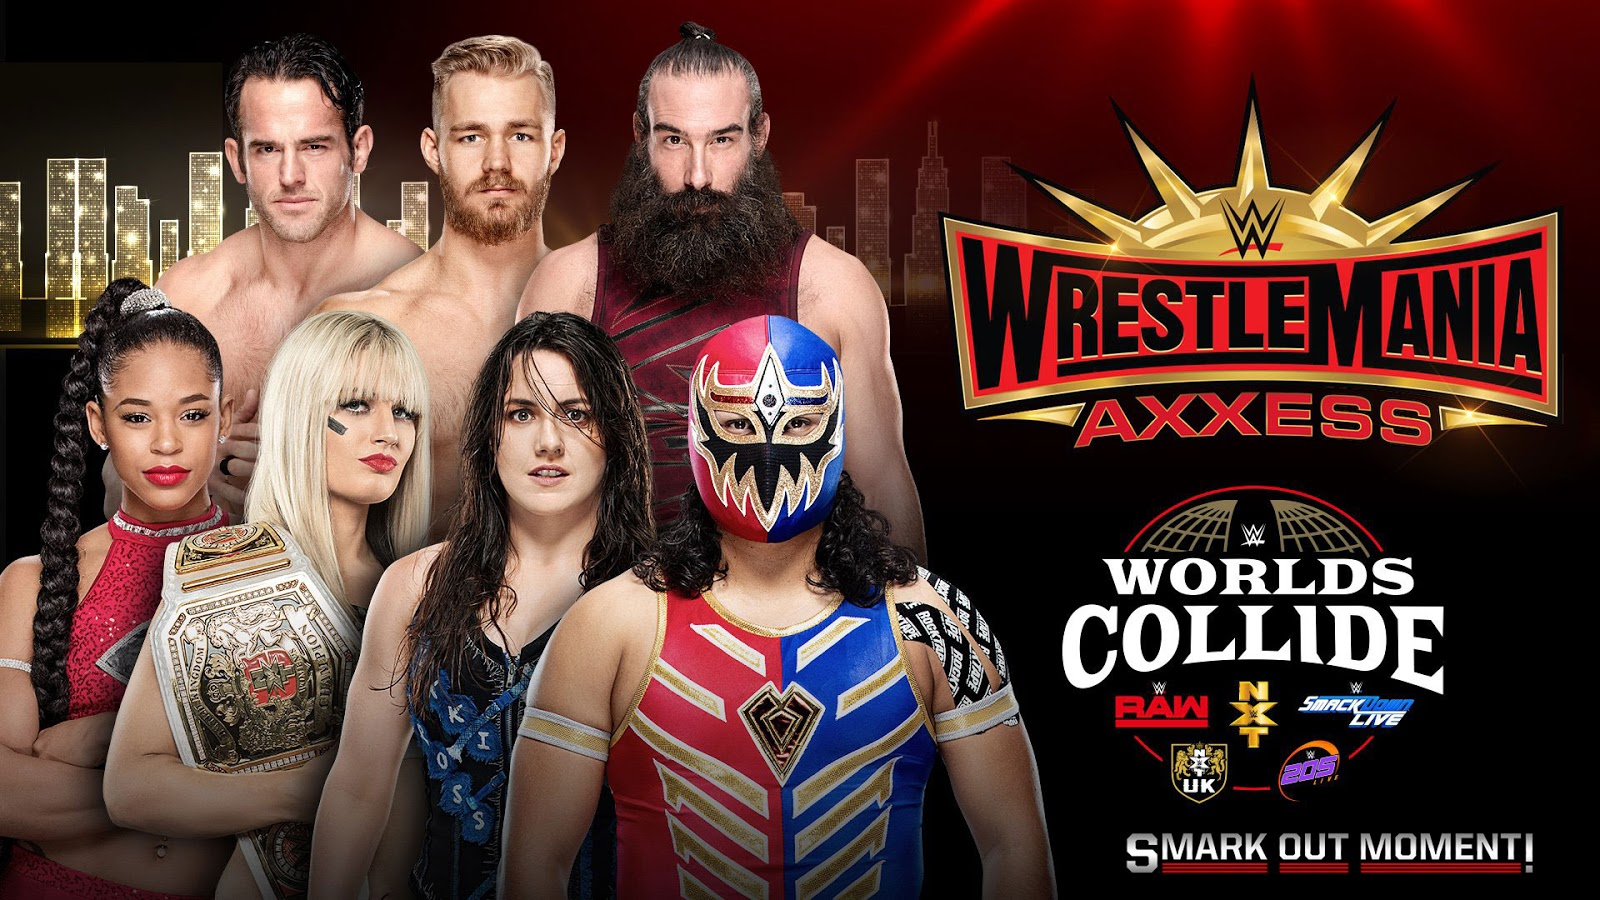 WWE Worlds Collide at WrestleMania 35 Axxess Results and